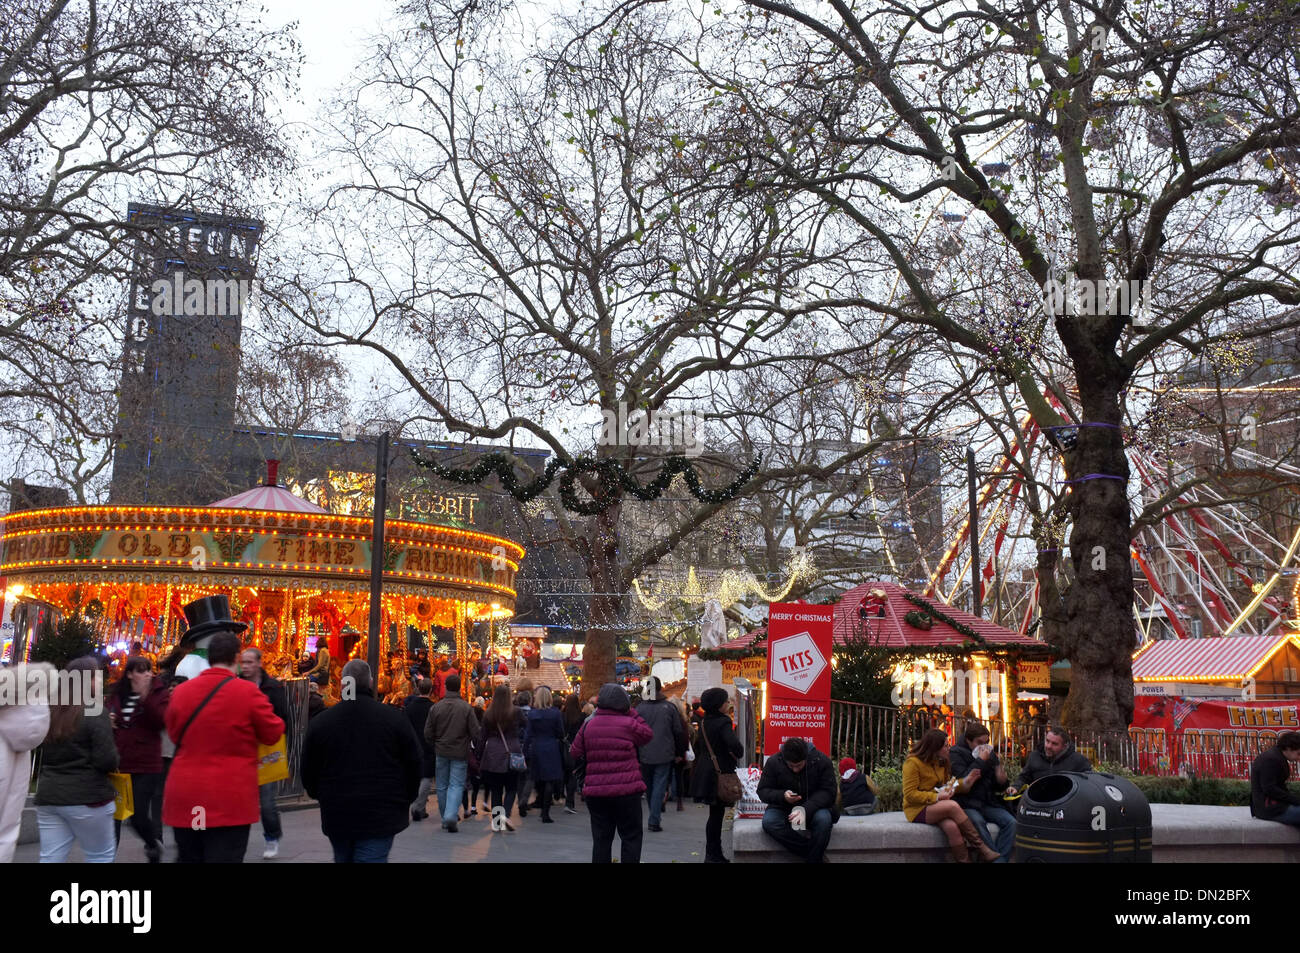 carnival funfair in leicester square london UK 2013 - Stock Image